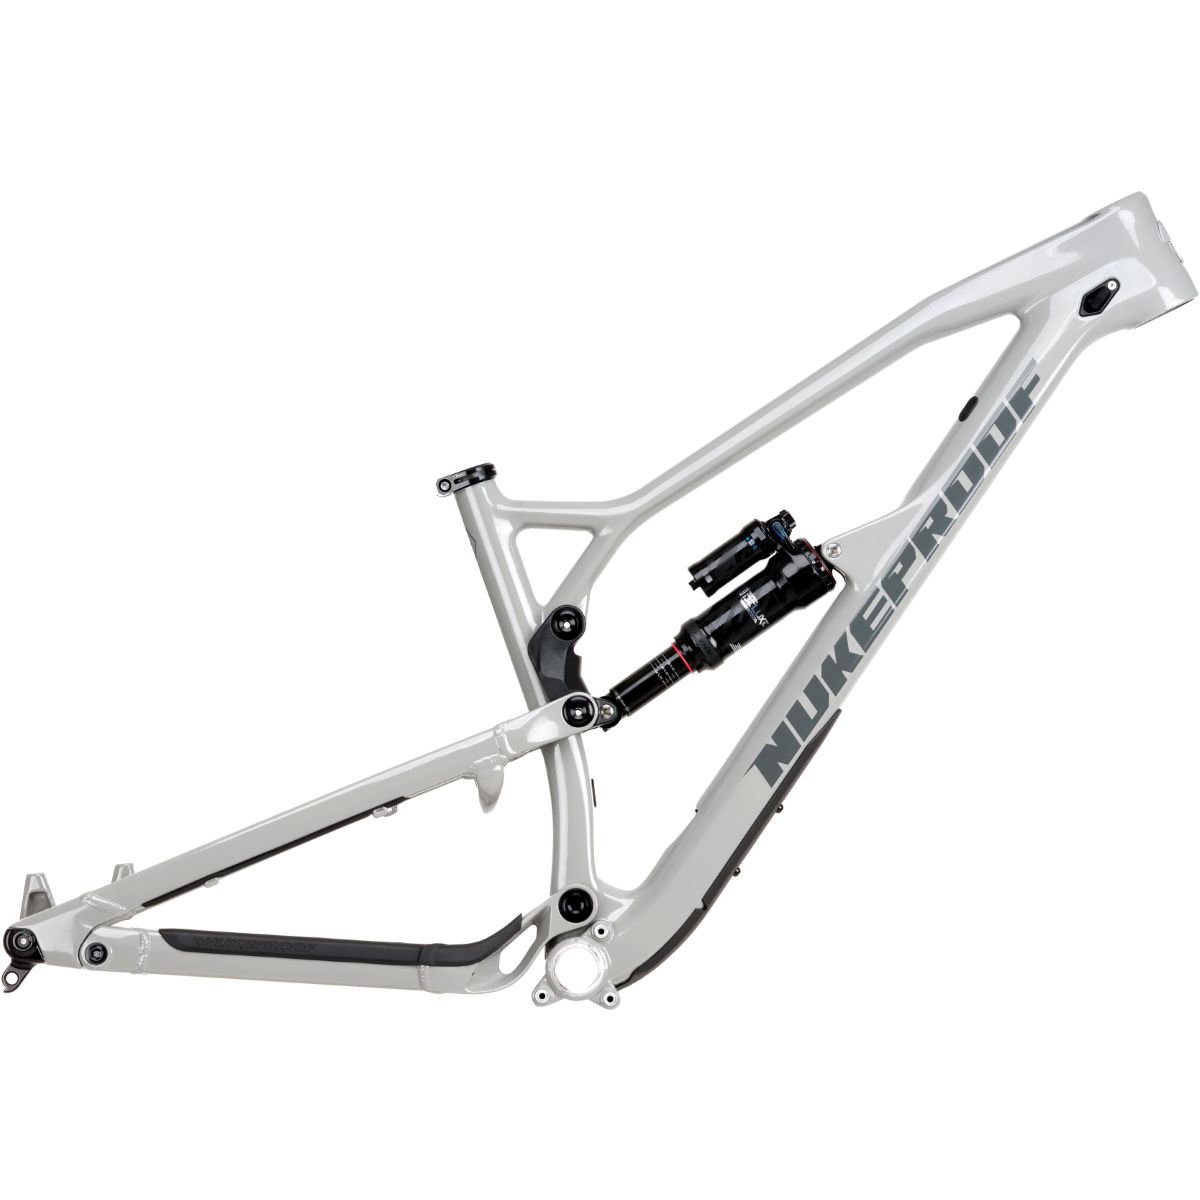 Nukeproof Nukeproof Mega 290 Carbon Mountain Bike Frame (2020)   Full Sus Mountain Bike Frames